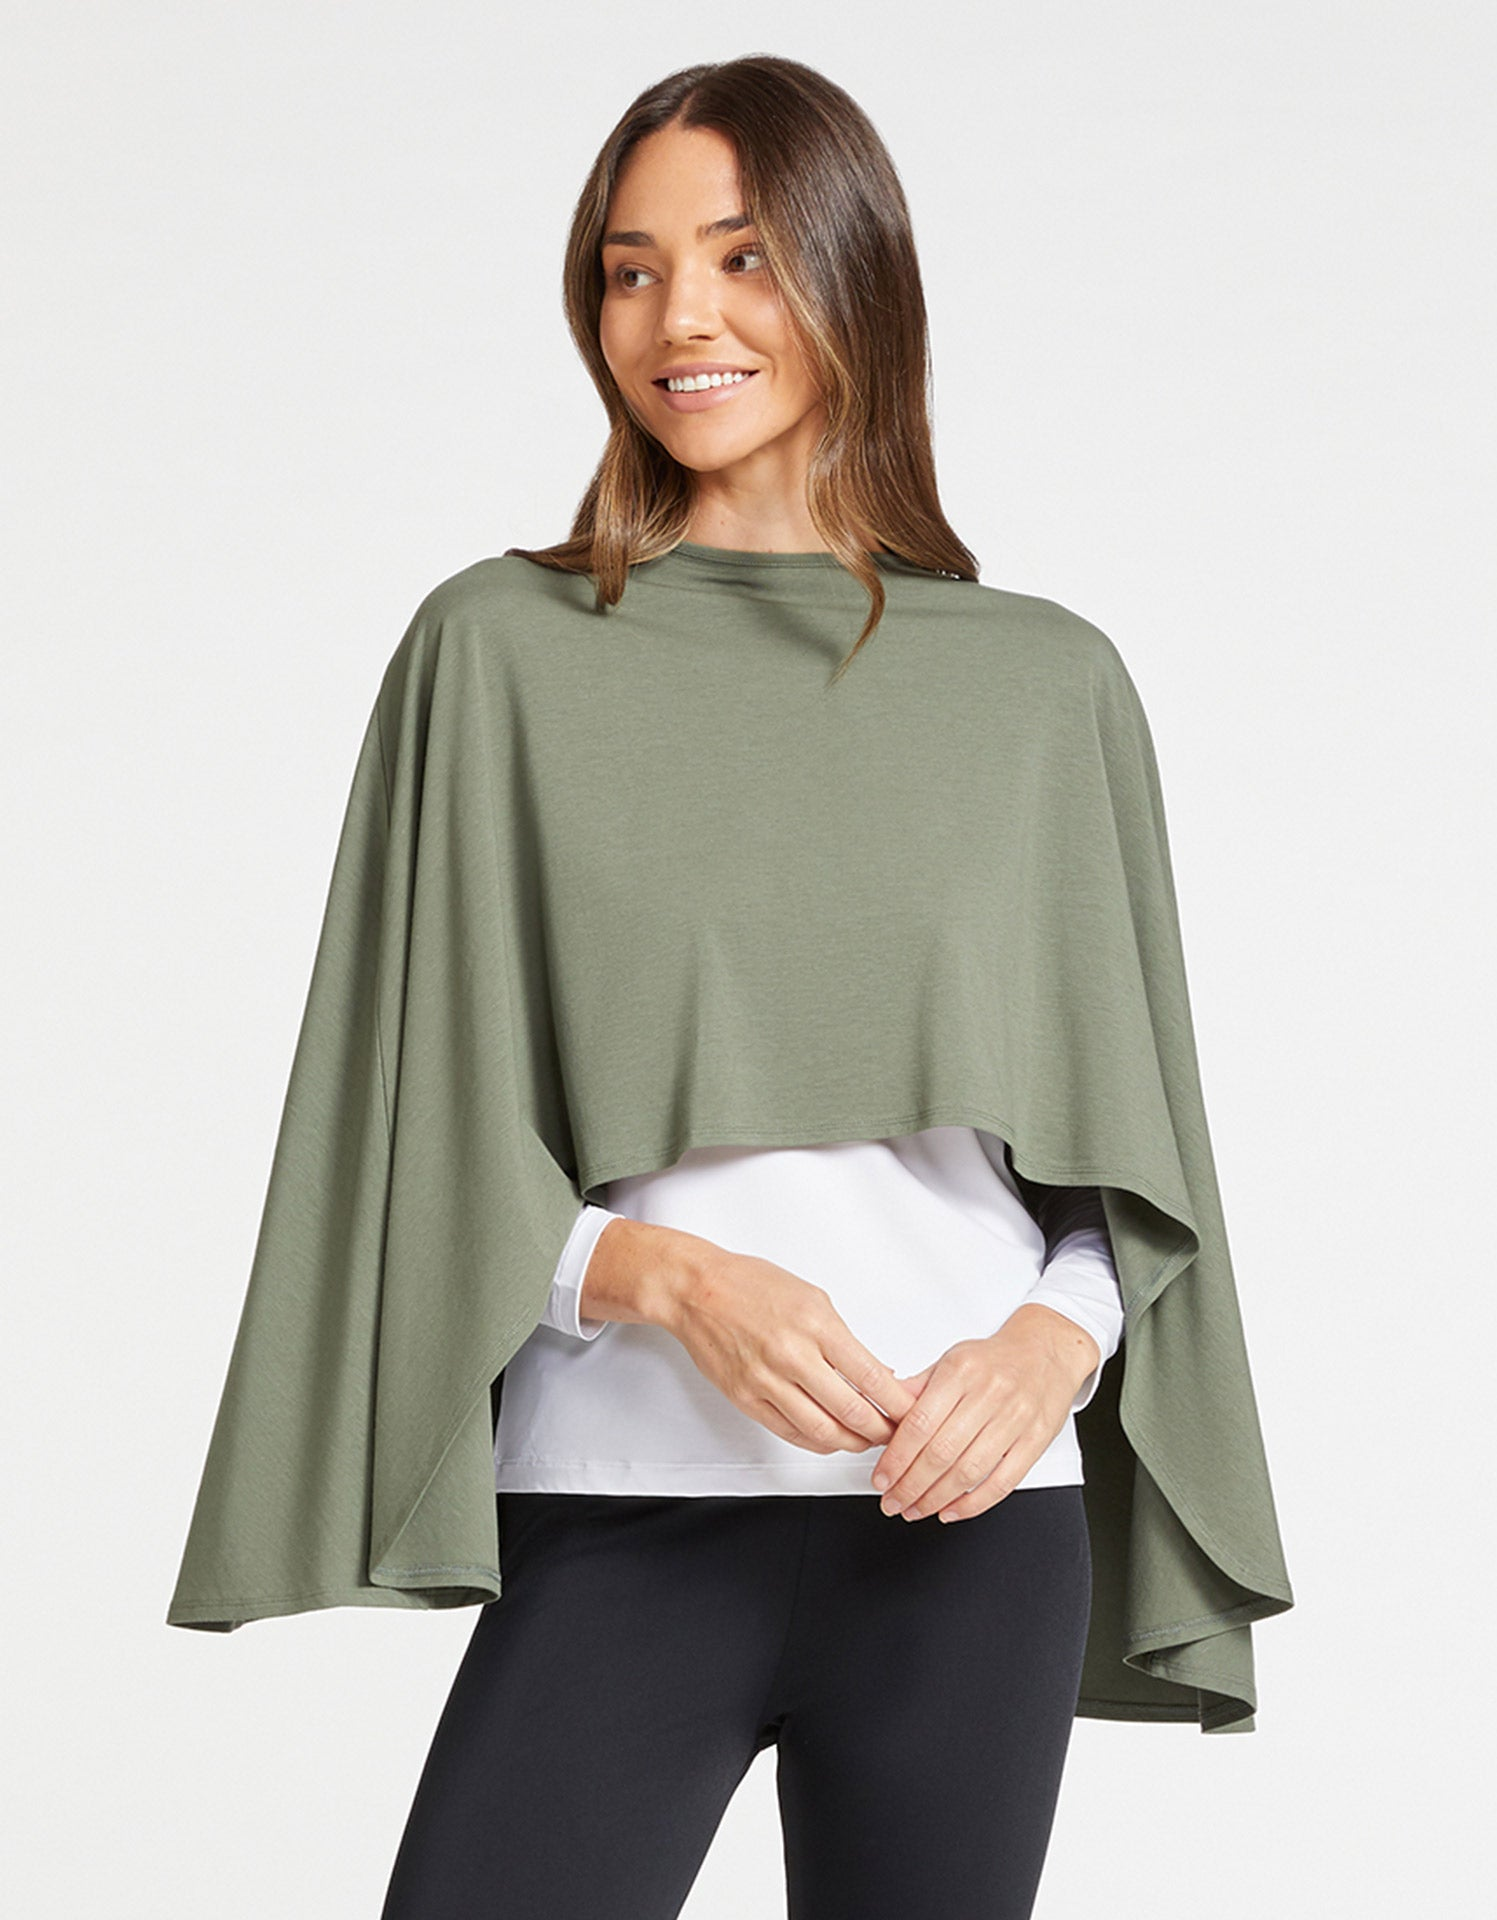 Solbari Sun Protection Women's UPF50+ Protective Shrug in Eucalyptus Green Sensitive Collection